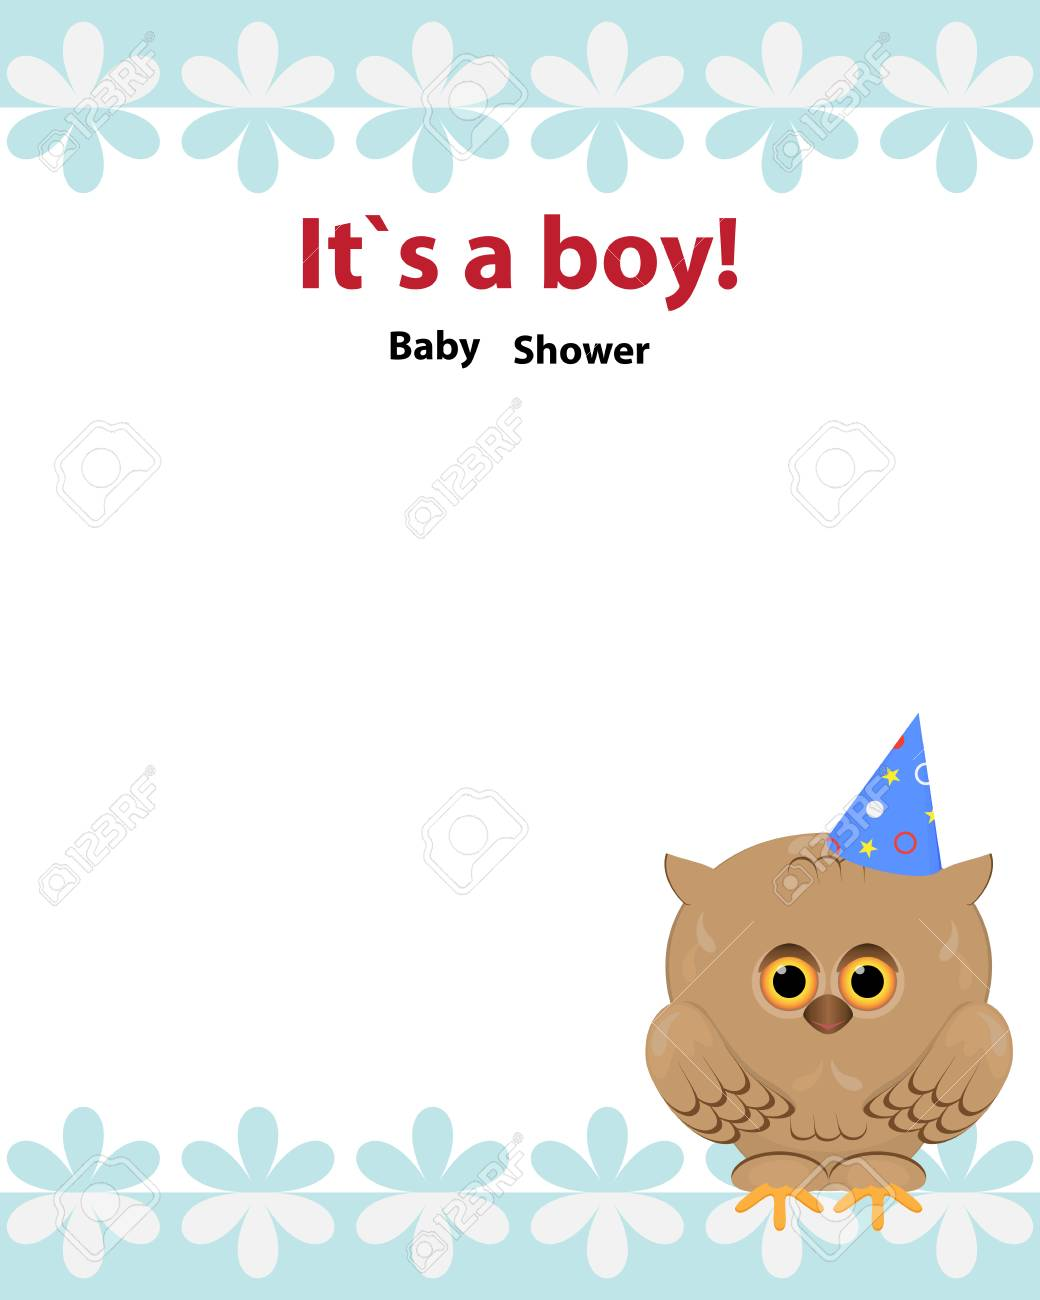 Baby Shower Invitation Card Design With Toy Owl Party Hat And